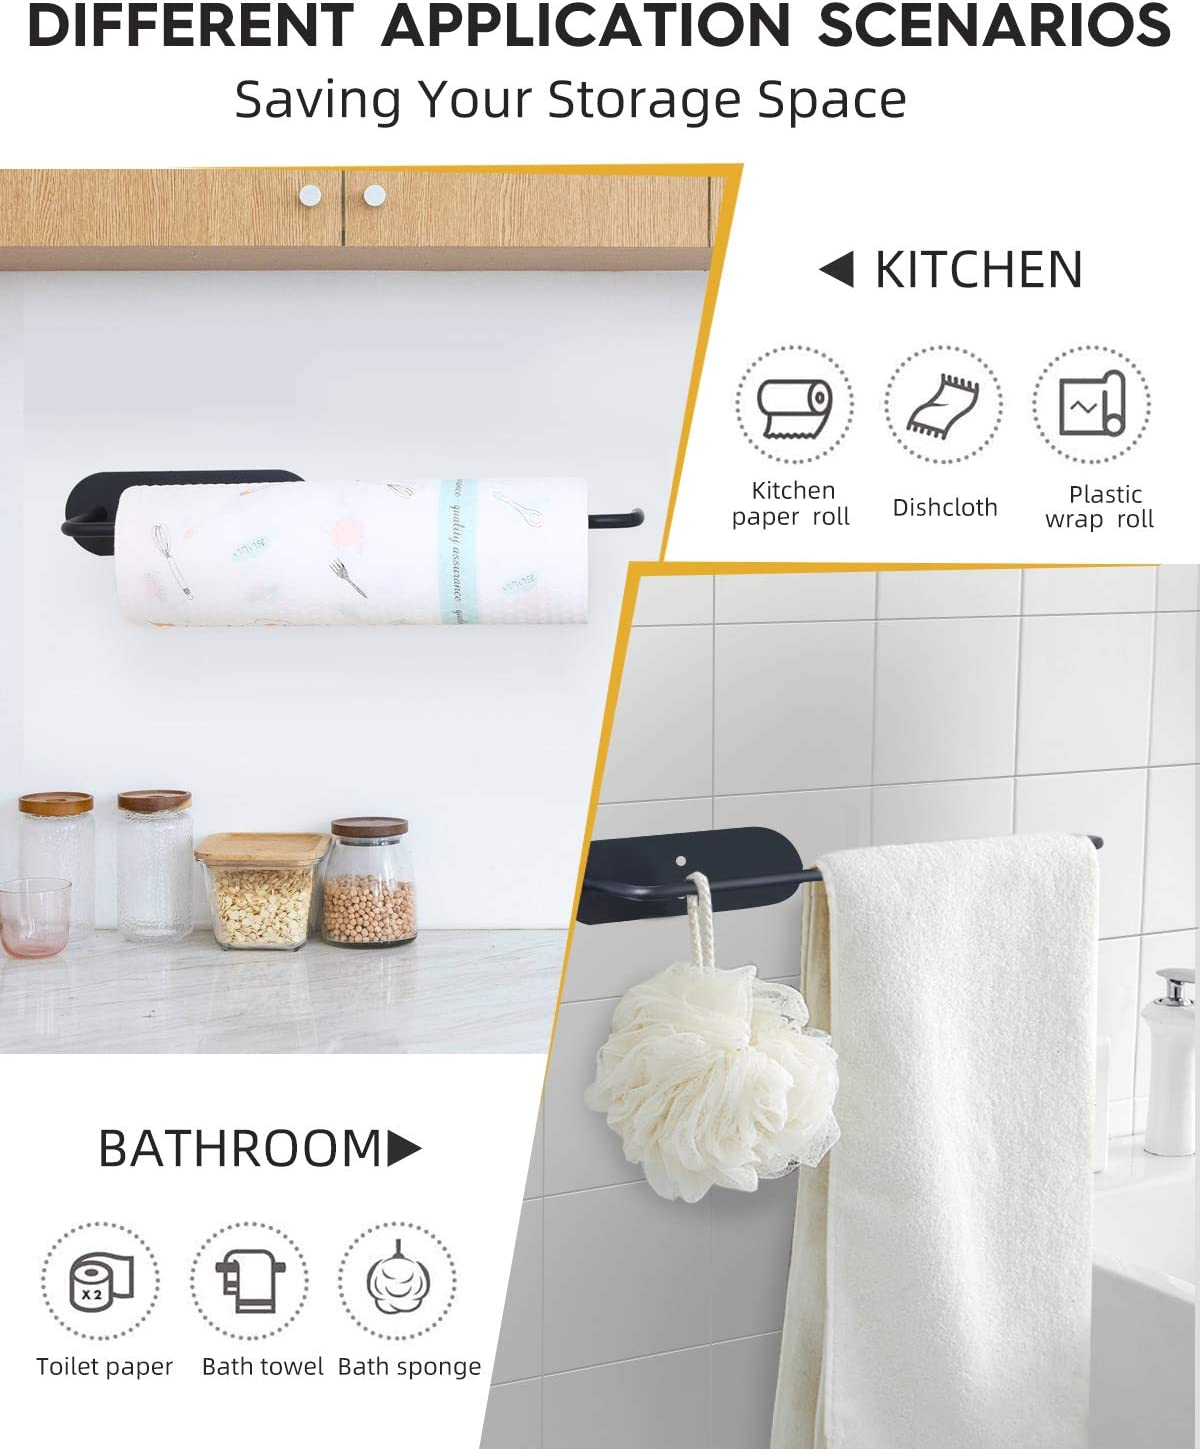 SUS304 Stainless Steel Paper Towel Holder Under Cabinet Mount Adhesive or Drilling Black Paper Towel Holder Stick on Wall for Kitchen and Bathroom